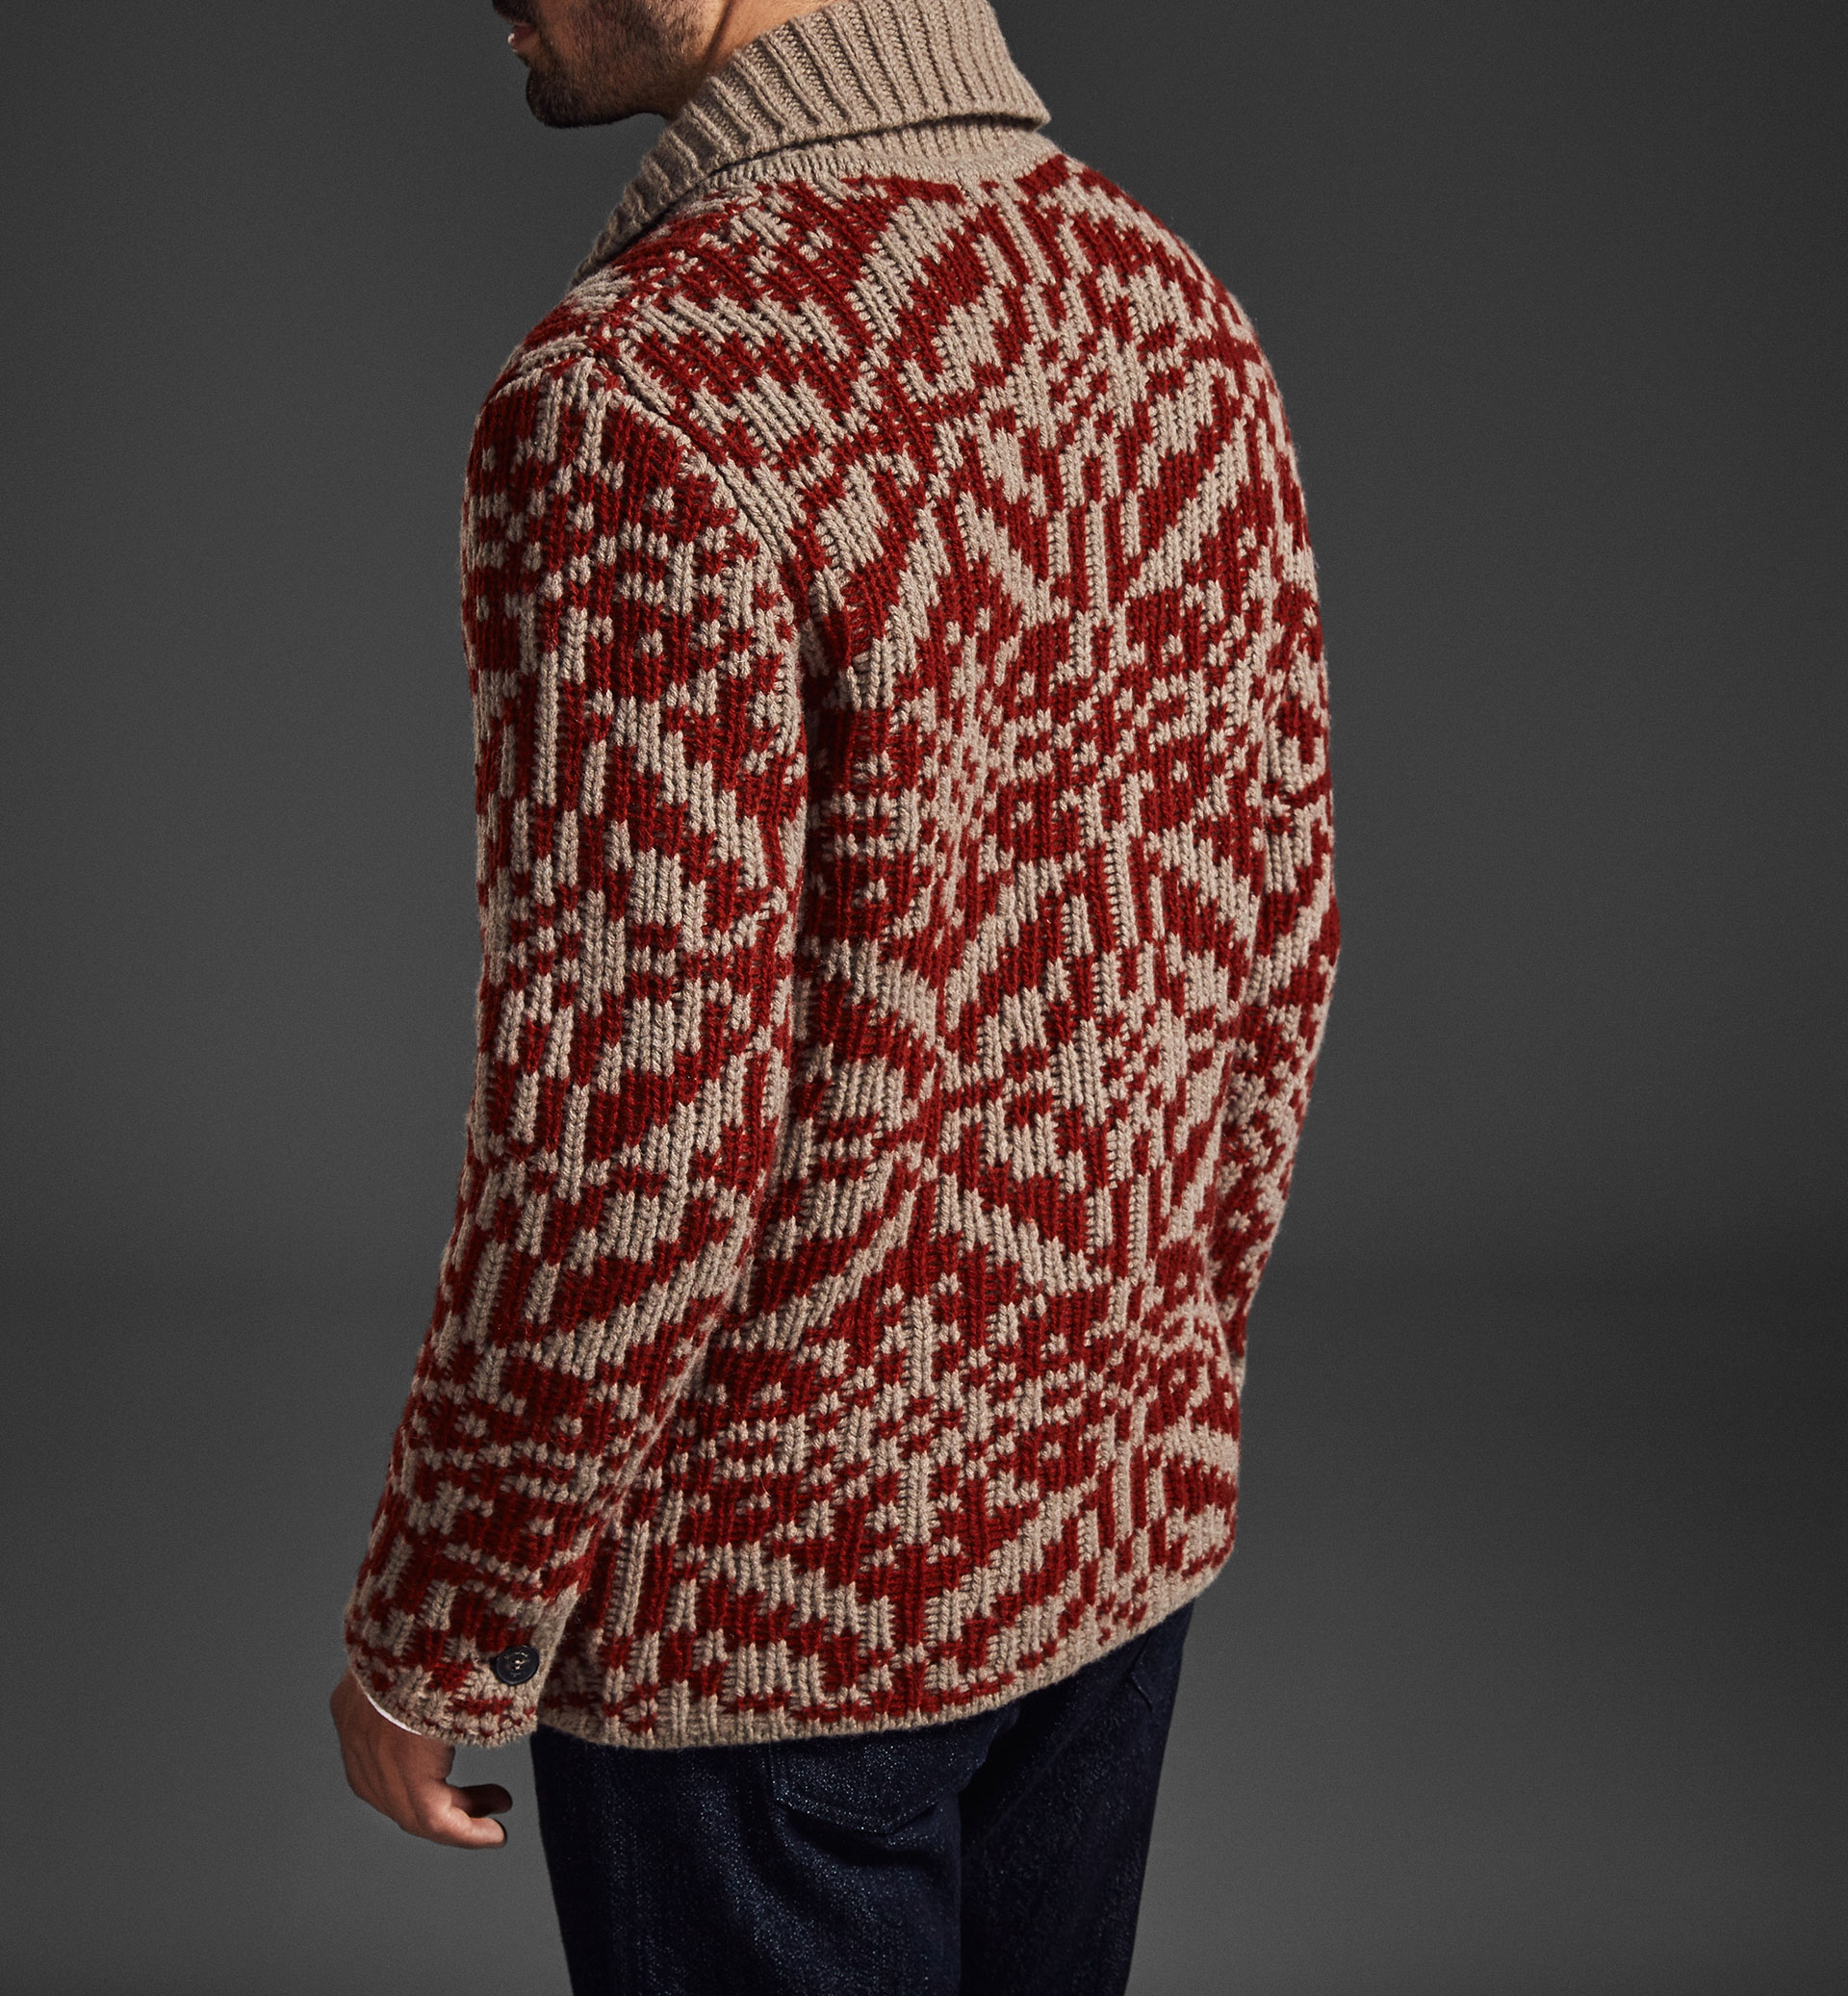 CARDIGAN JACQUARD LIMITED EDITION